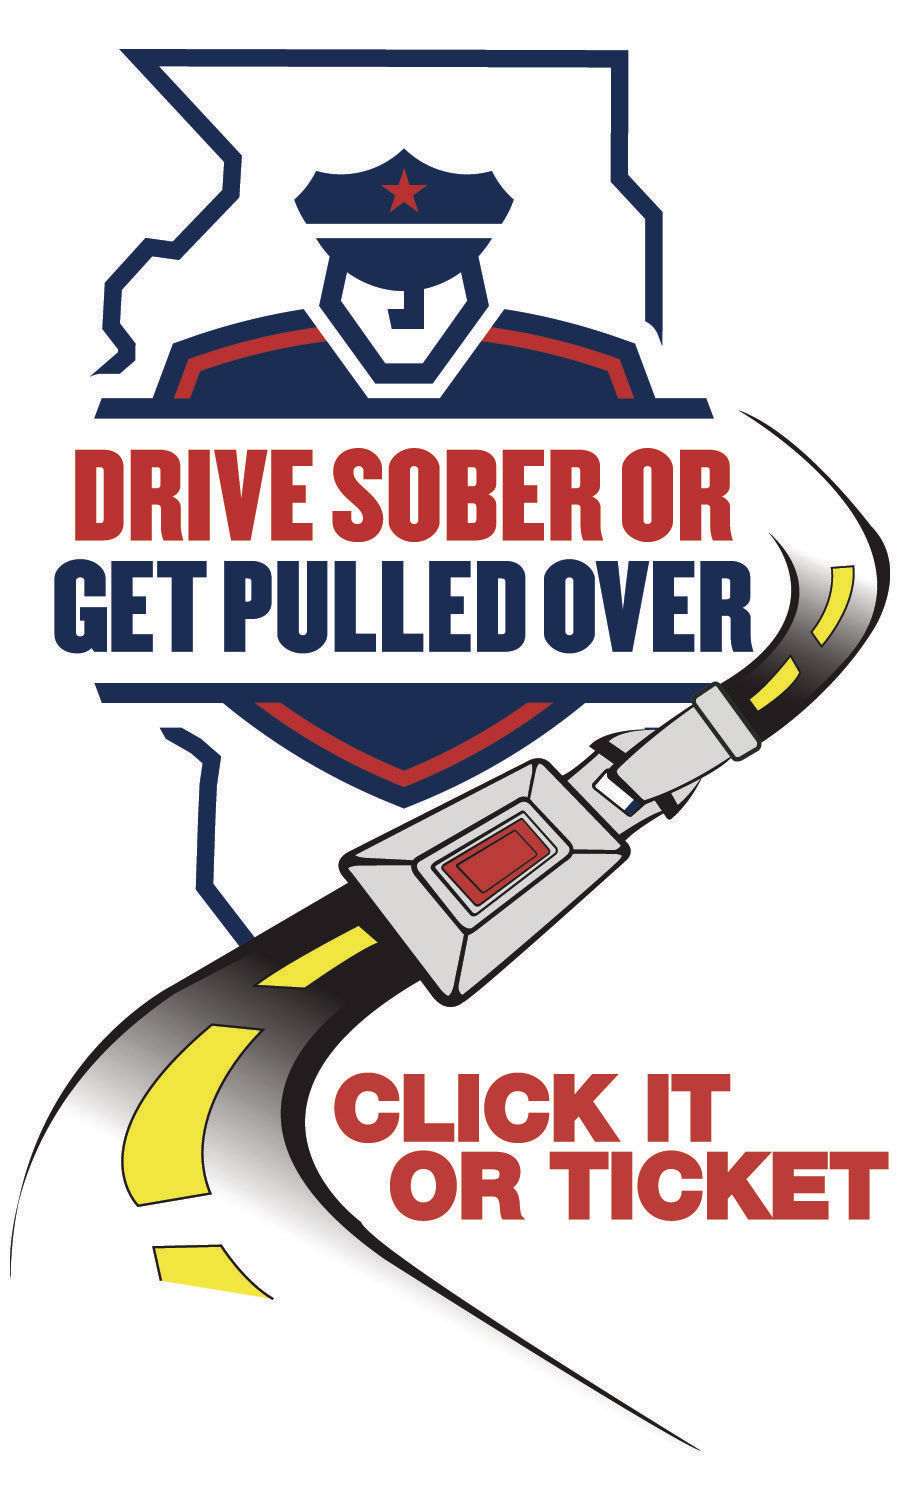 The Decatur Police Department Announces St. Patrick's Day 'Drive Sober or Get Pulled Over' Enforcement Results